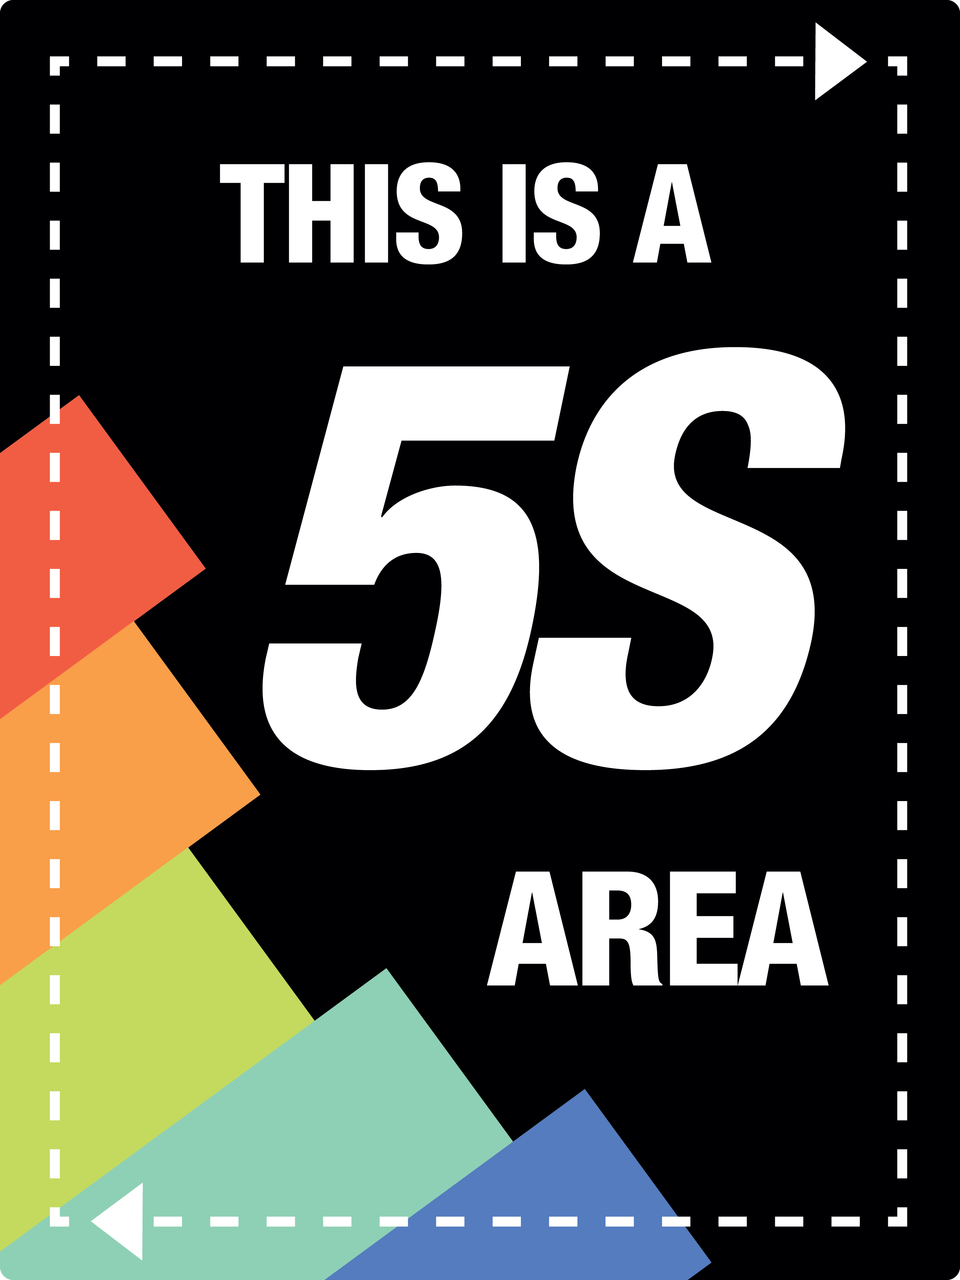 Large 5s Area Sign Phs Safety